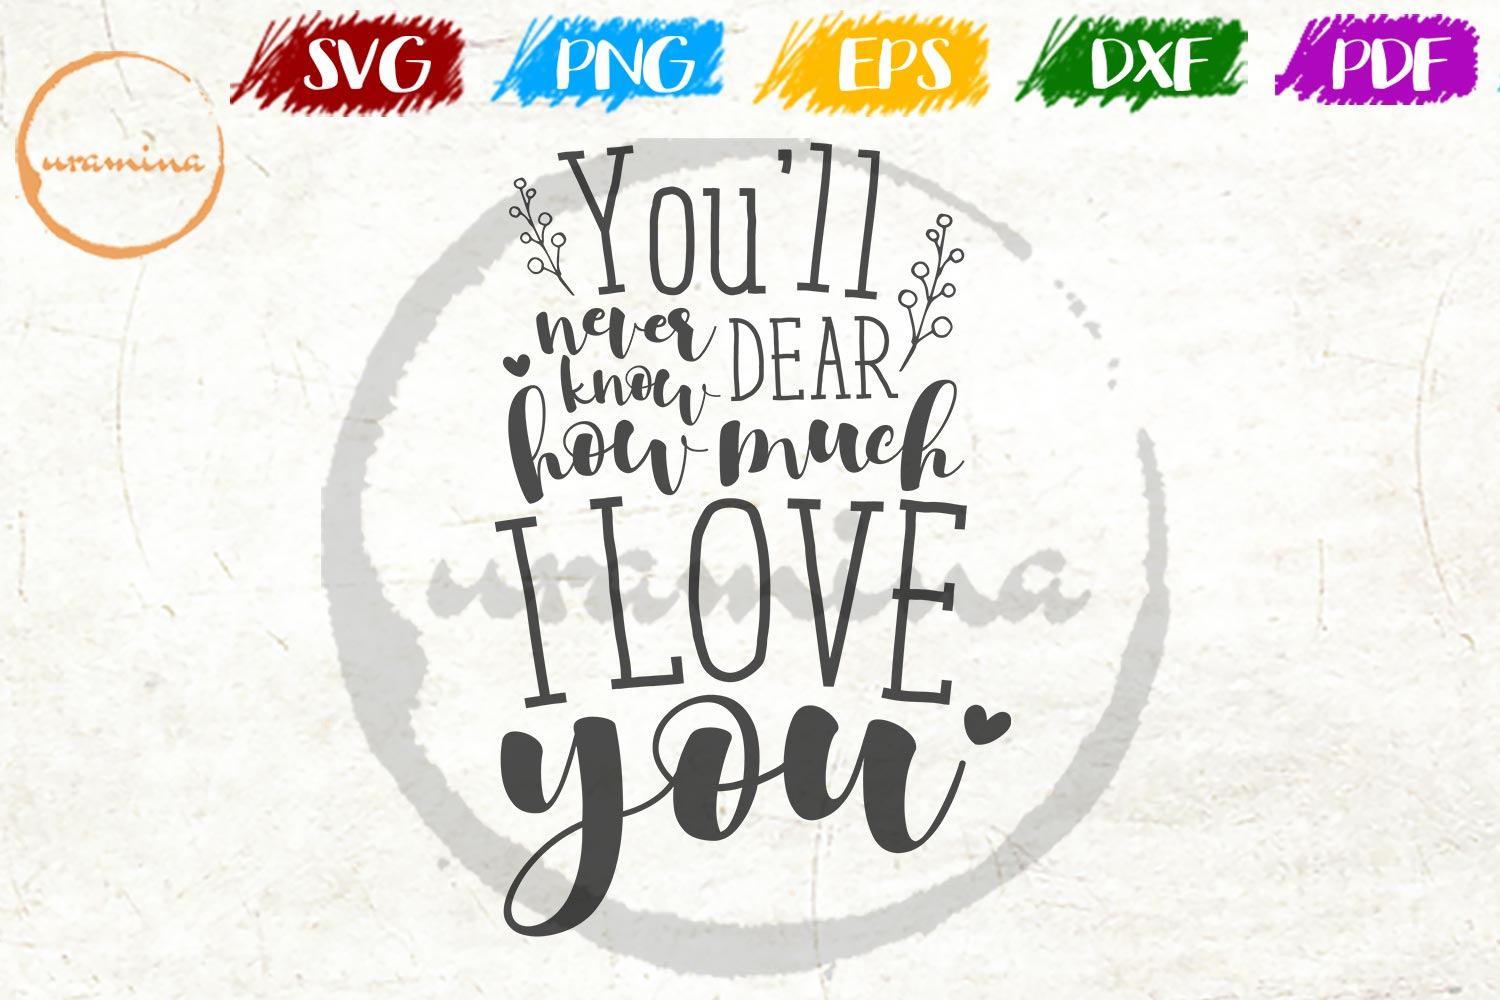 Download Free You Ll Never Know Dear How Much I Love Graphic By Uramina for Cricut Explore, Silhouette and other cutting machines.